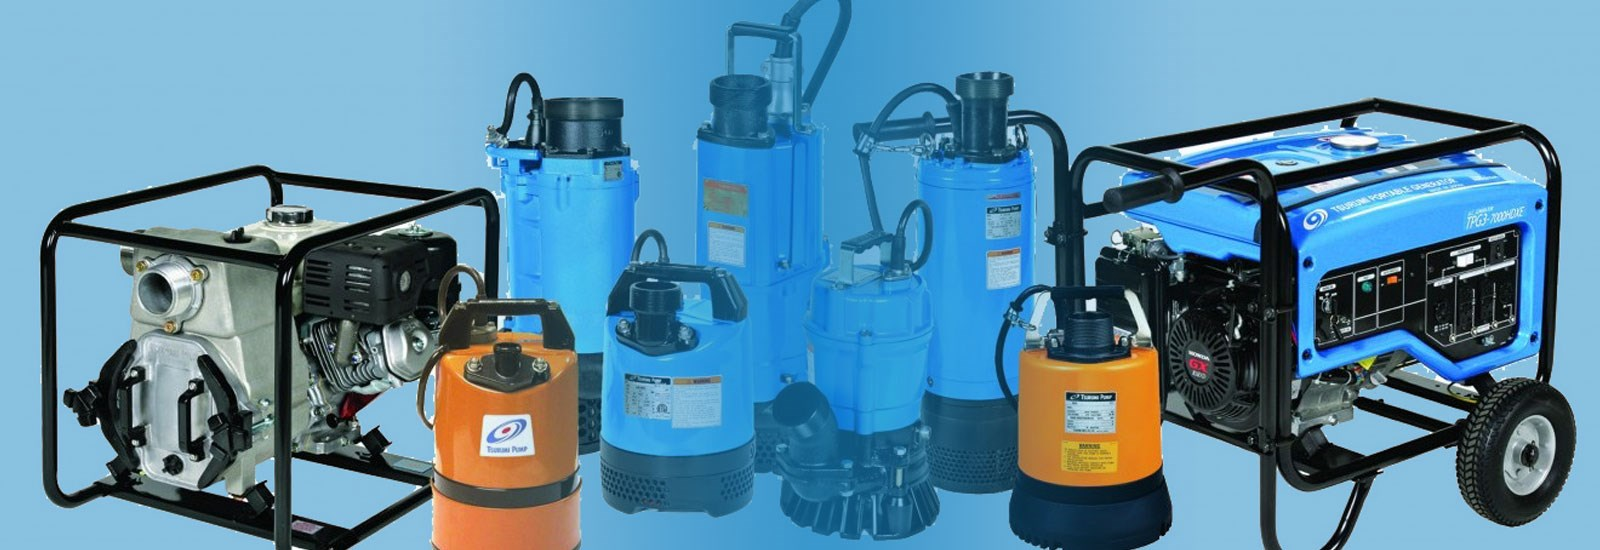 Tsurumi - Electric Submersible Water Pumps